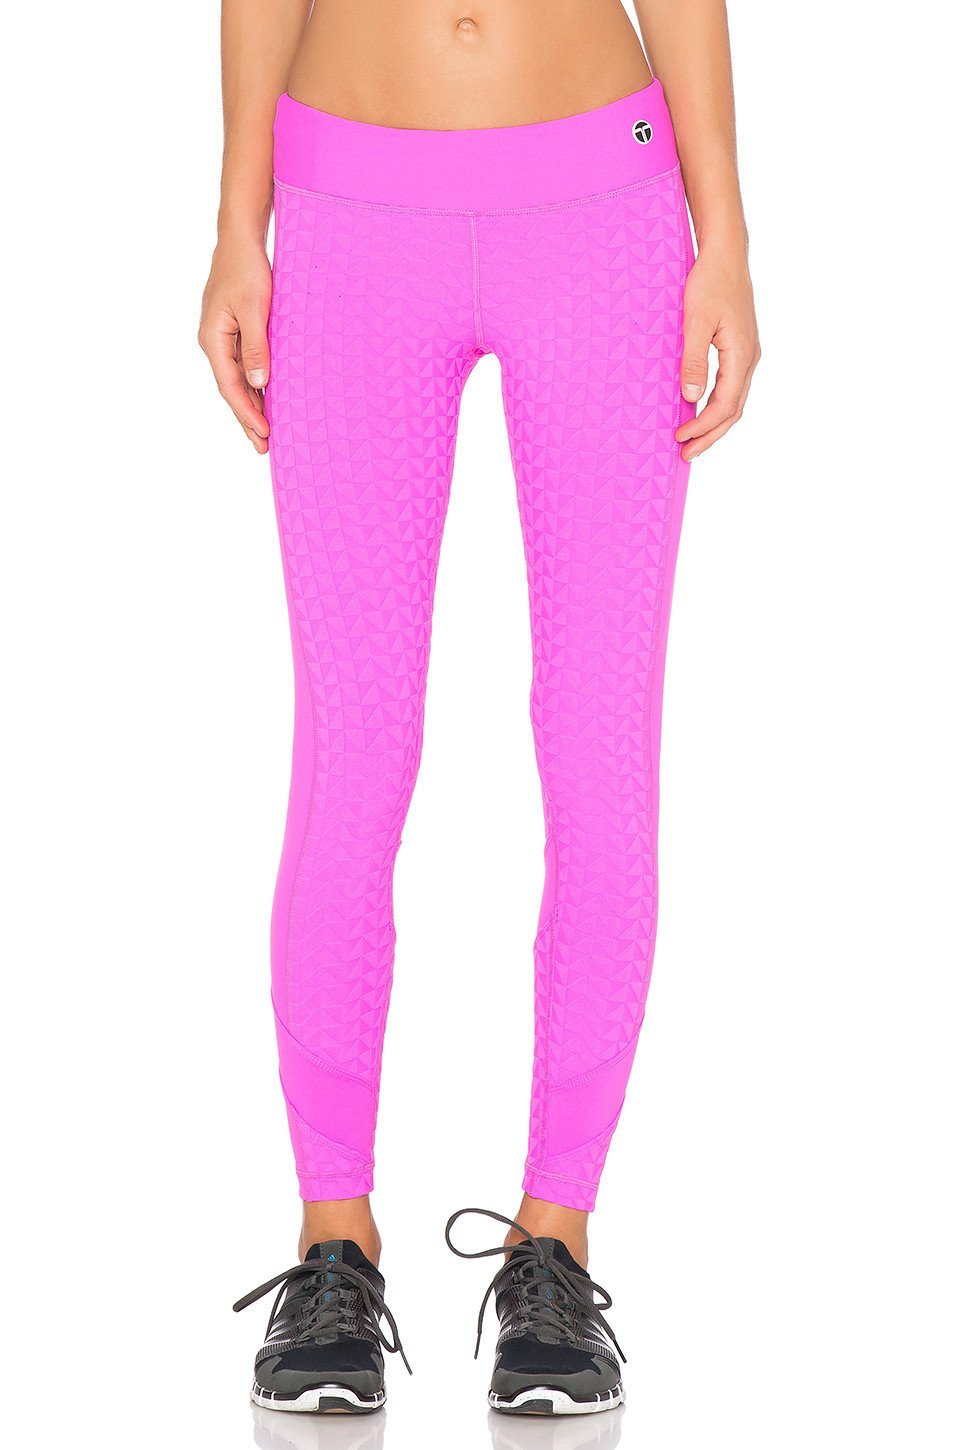 Bermuda Triangle Legging - Kustom Label - 1